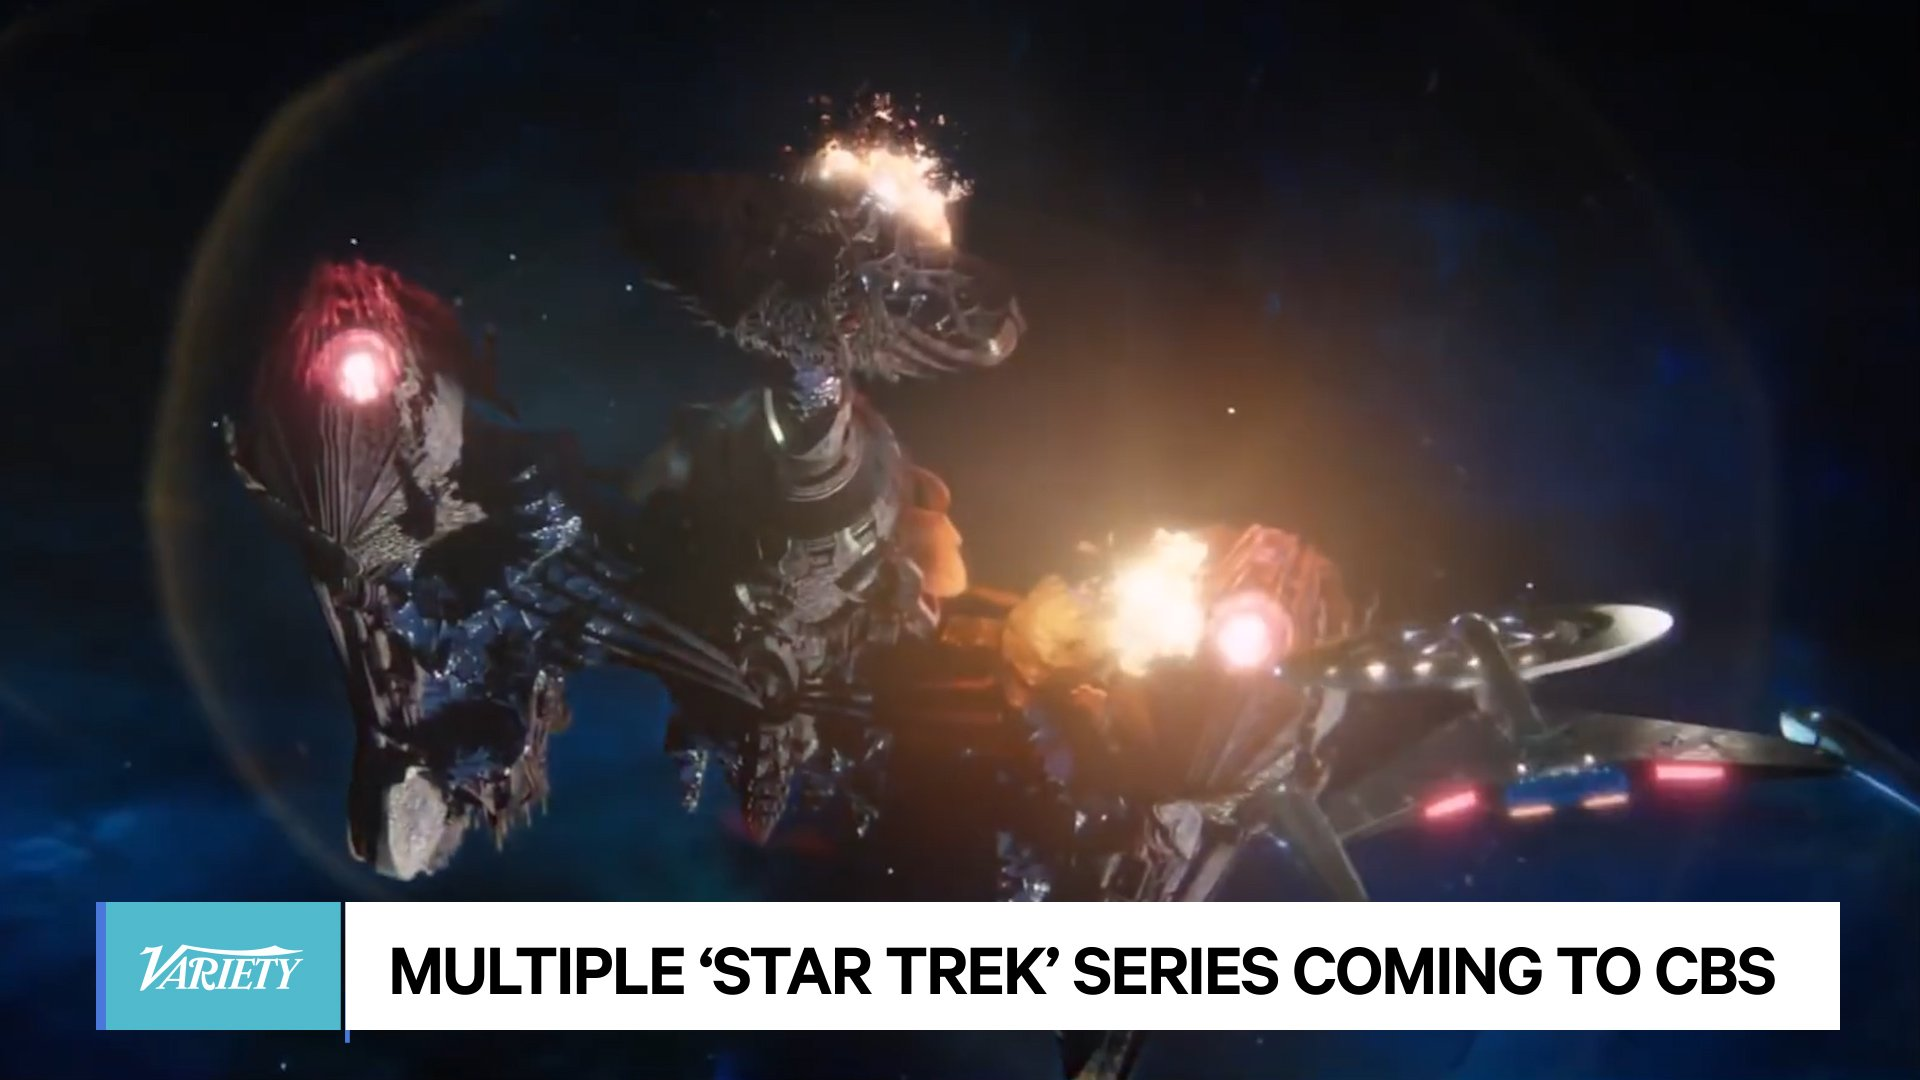 New #StarTrek shows are in the works as CBS expands the sci-fi series' universe https://t.co/4dqDzJnE3e https://t.co/8NdNBejyNn